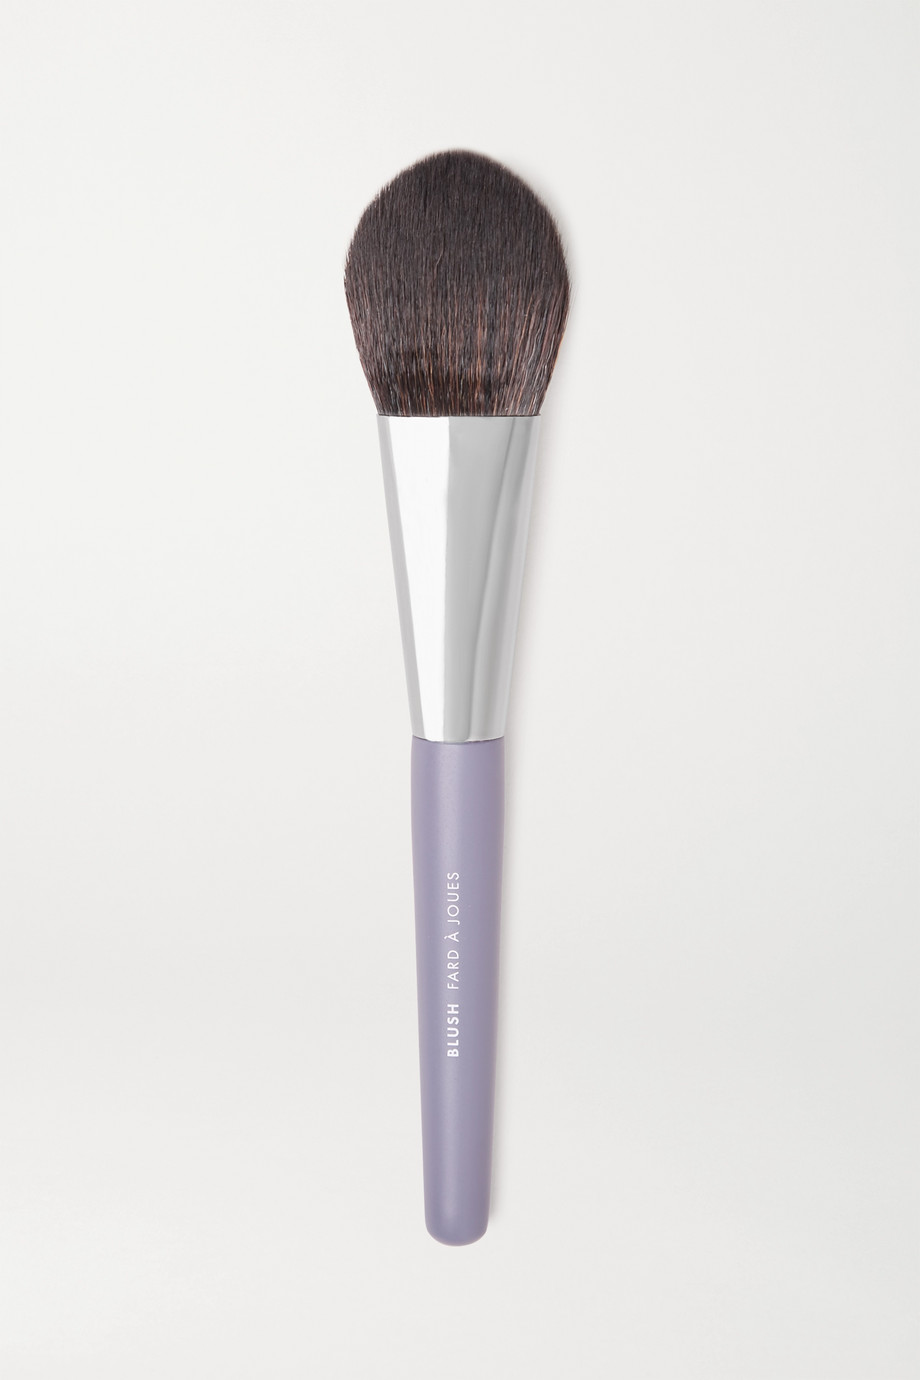 Vapour Beauty Blush Brush